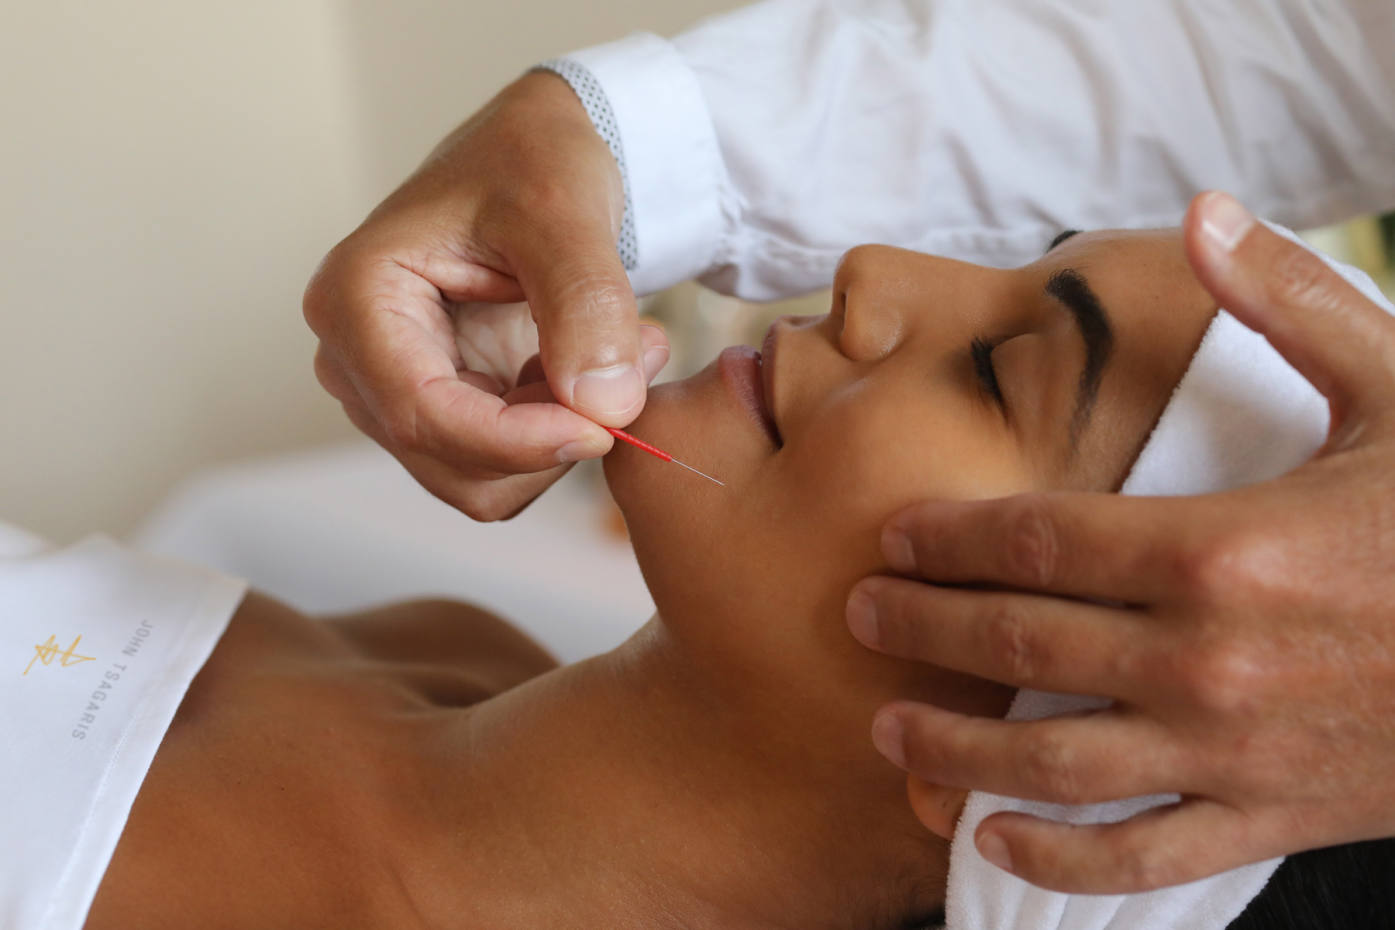 The Beauty Acupuncture with Hyaluronic Acid Skin Remodelling Facial costs £1,700, or £4,335 for three sessions